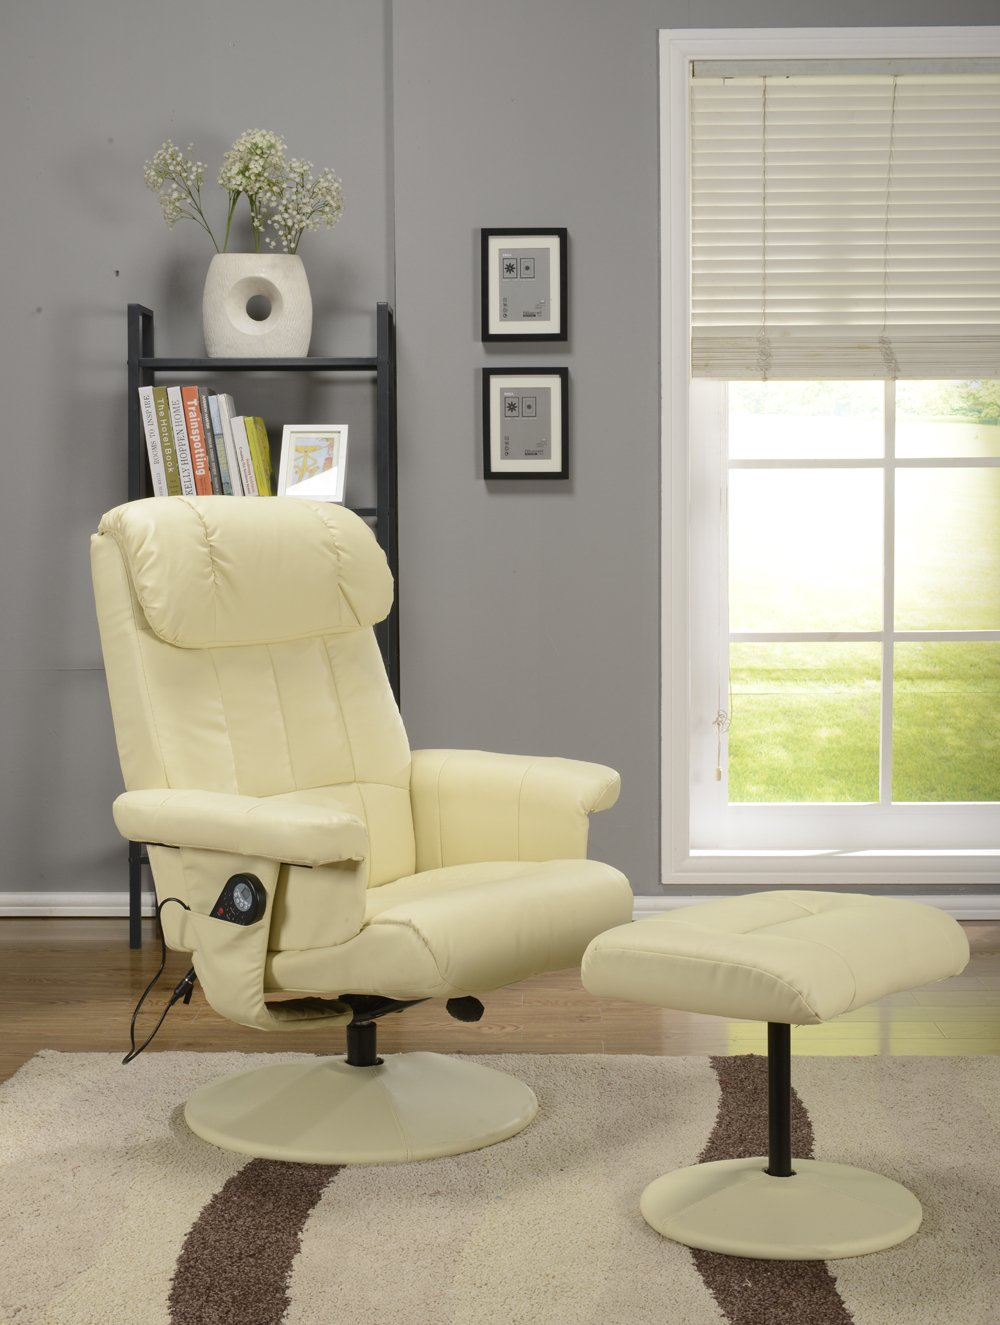 Best Massage Chair reviews - Kings Brand Cream White Massage Recliner Swivel Chair & Ottoman